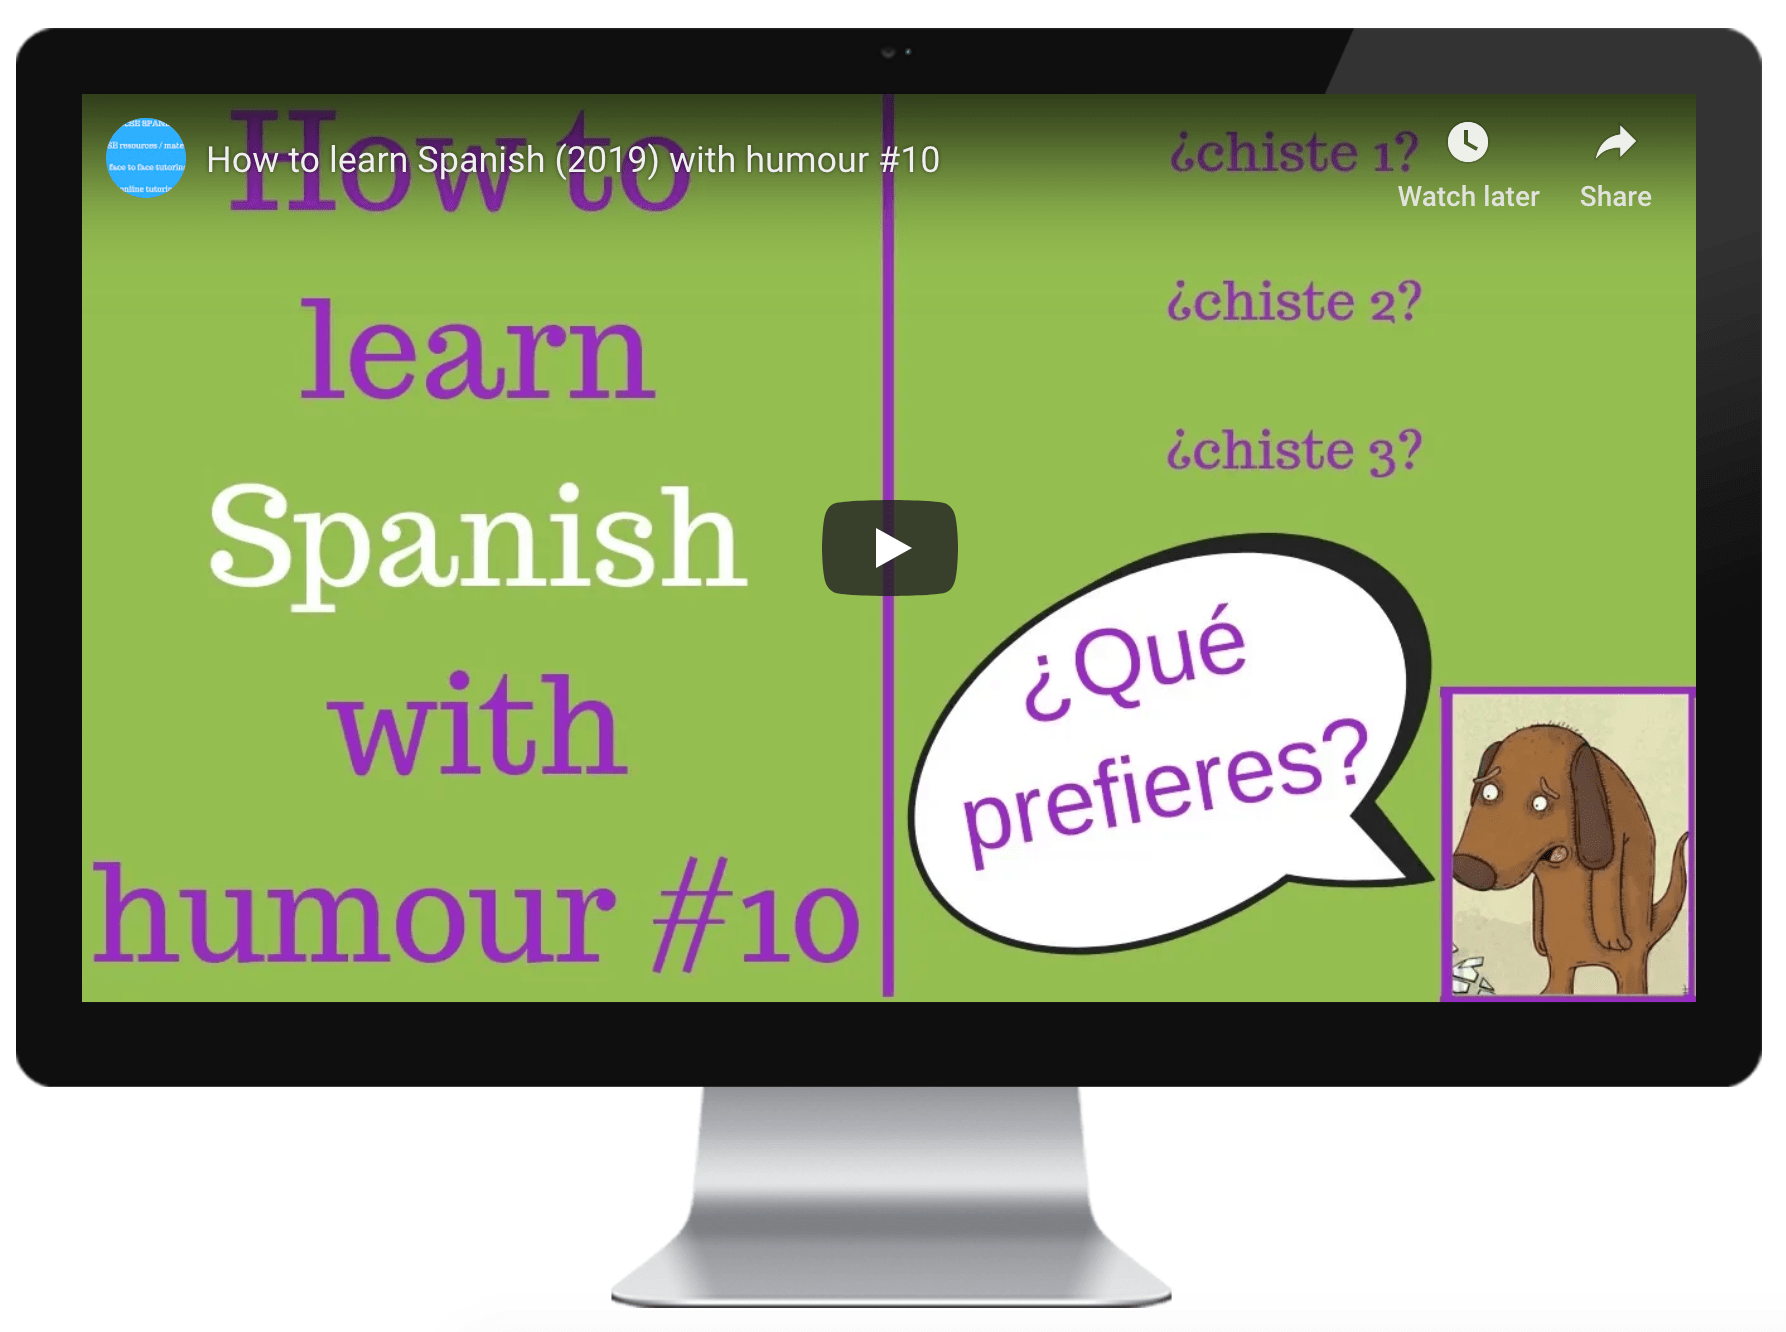 through humour Learning spanish, Spanish learning apps